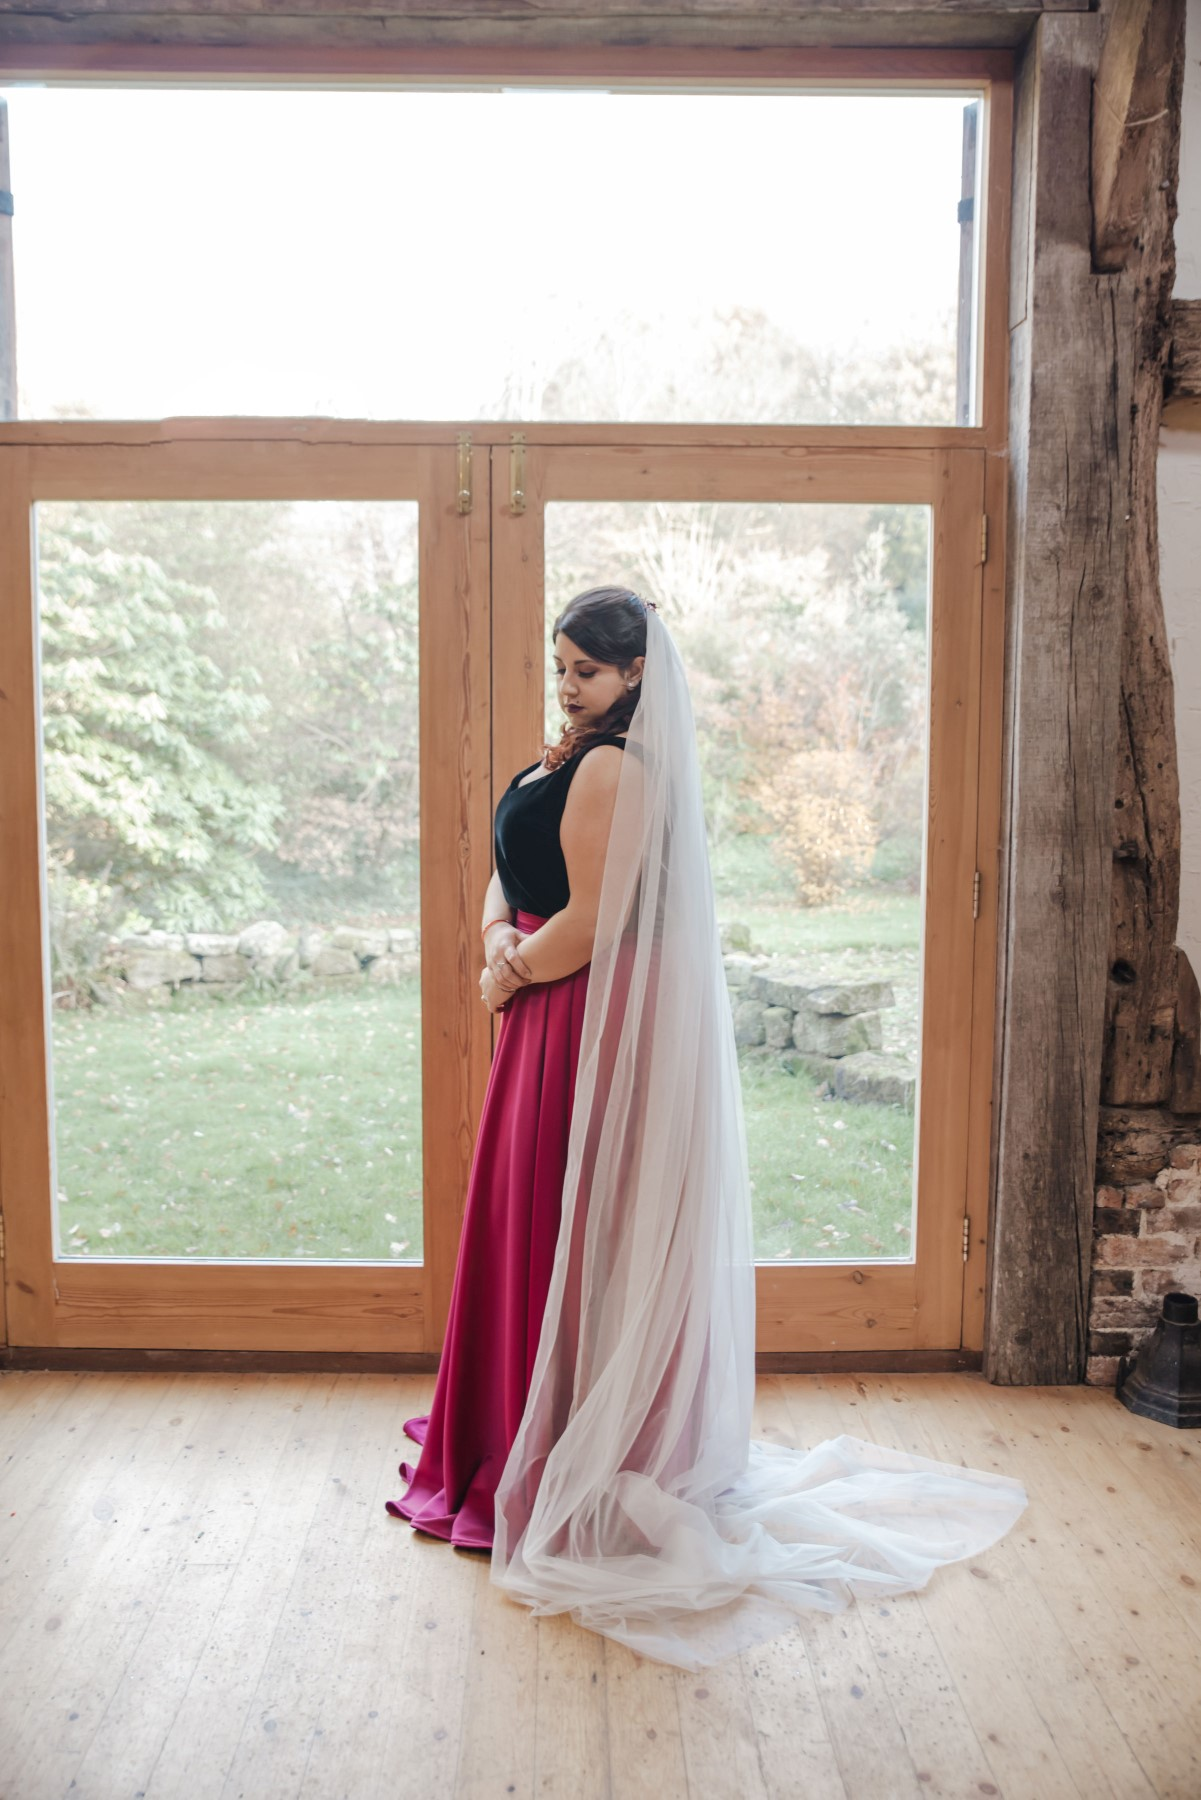 Roshni Photography- Barn Wedding Shoot- Window